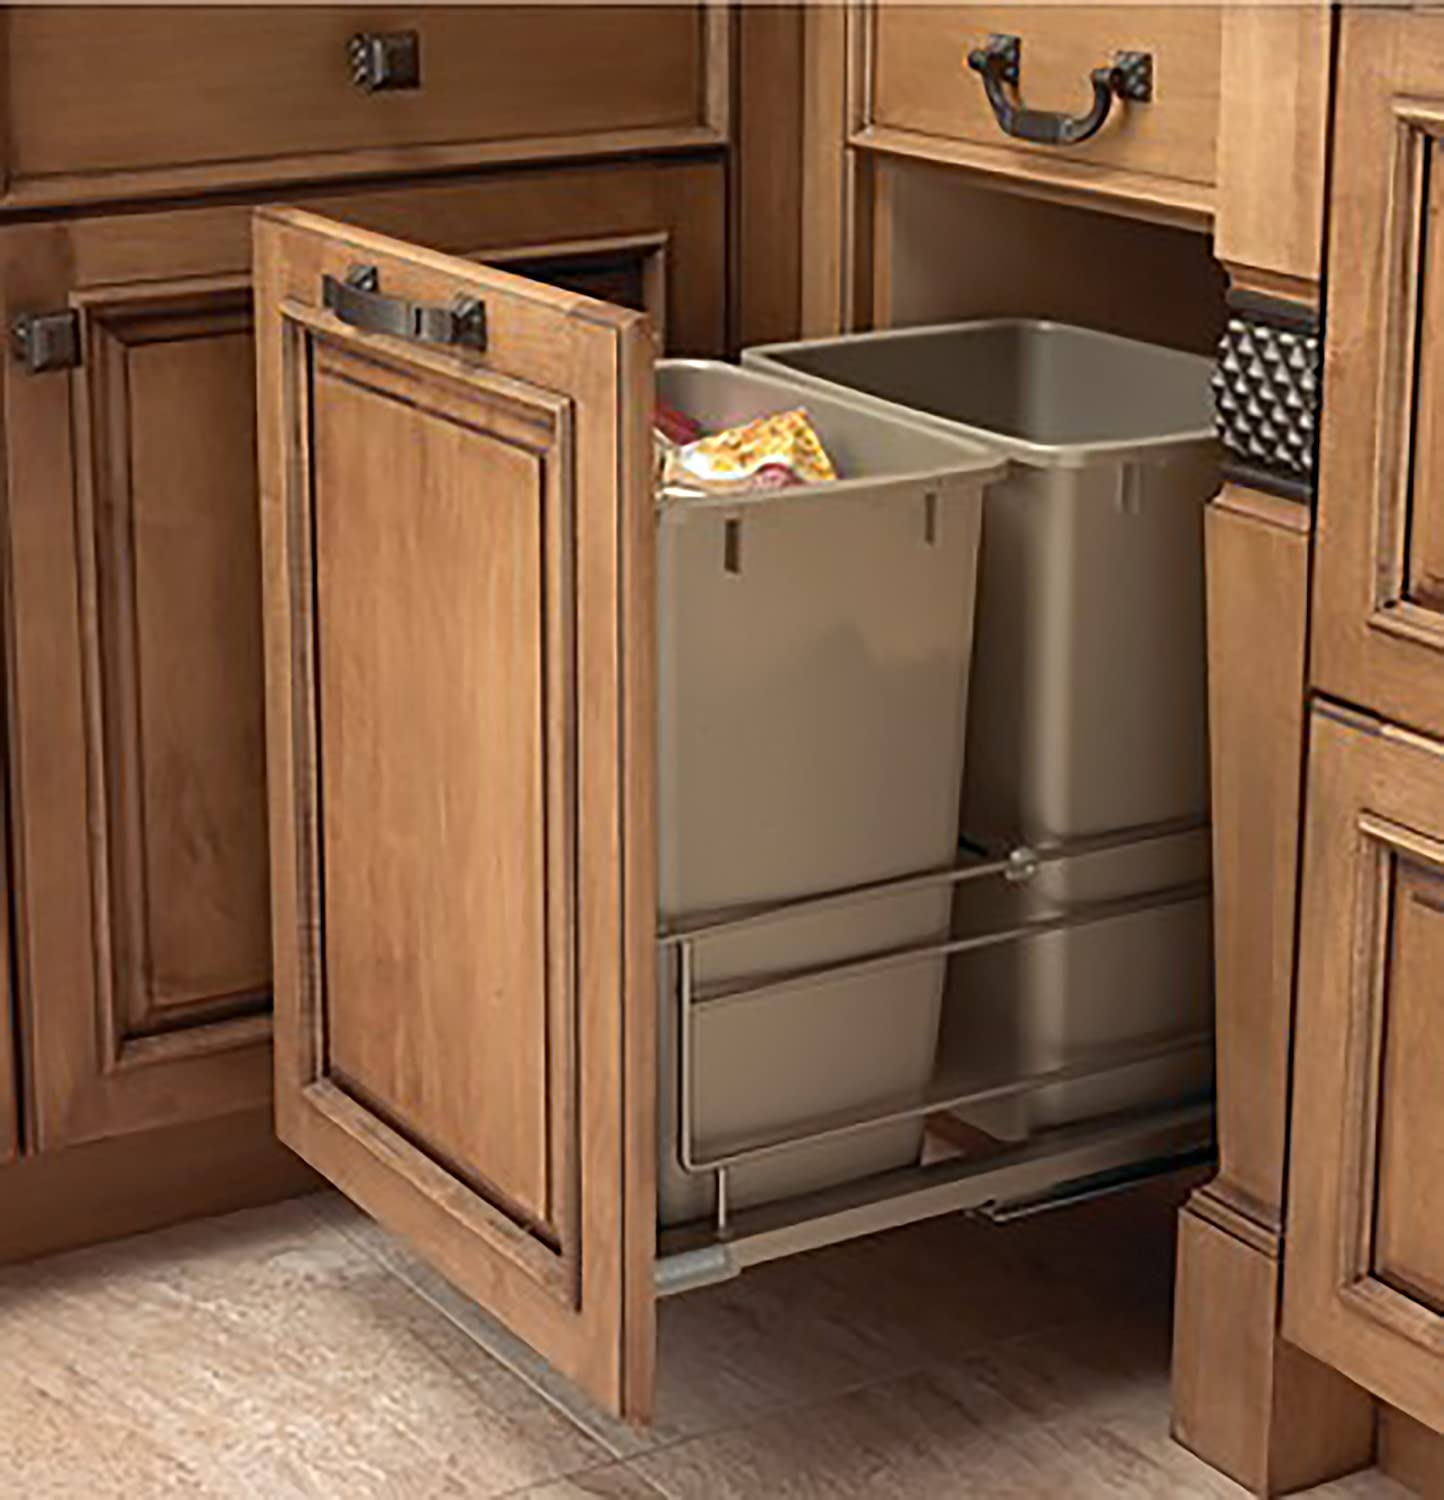 Hafele Kitchen Cabinets: Hafele Individual Cabinet Pull Out Drawers